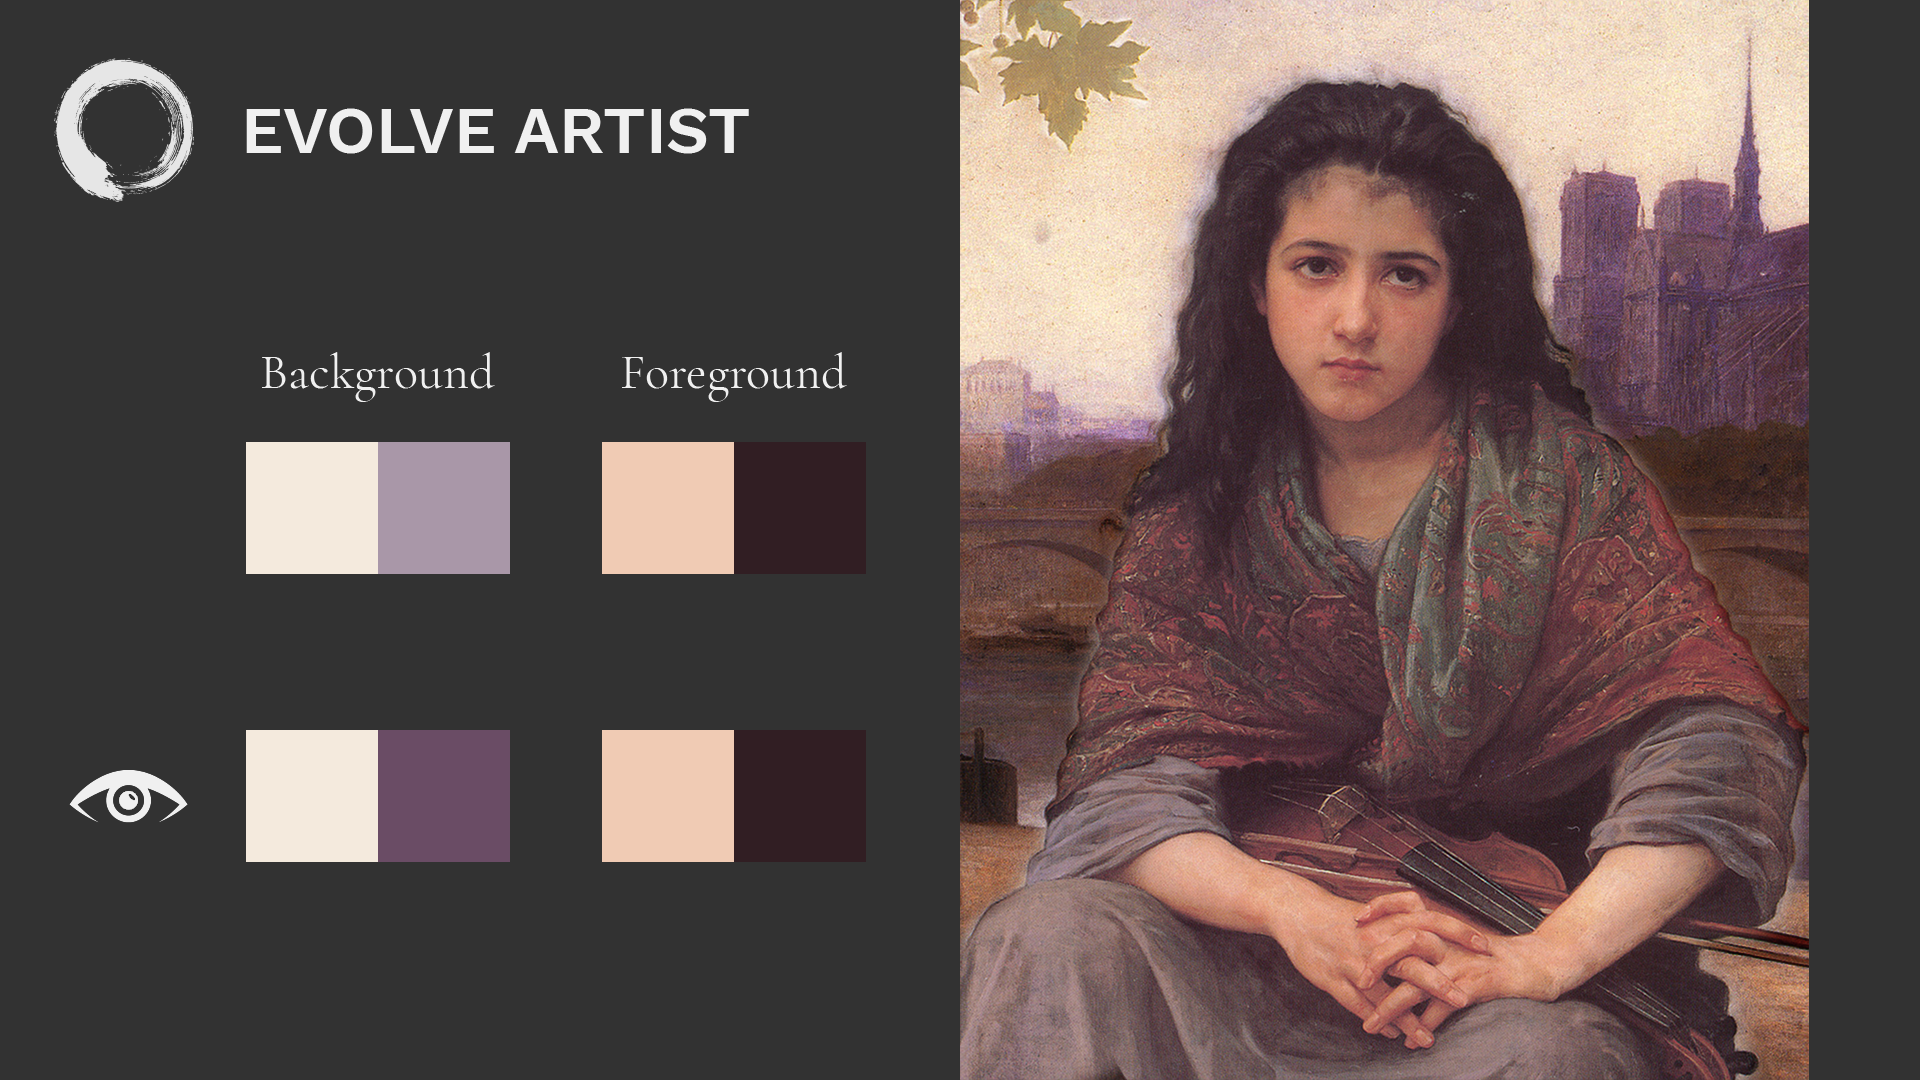 Increased contrast in Bouguereau's painting changes focal point